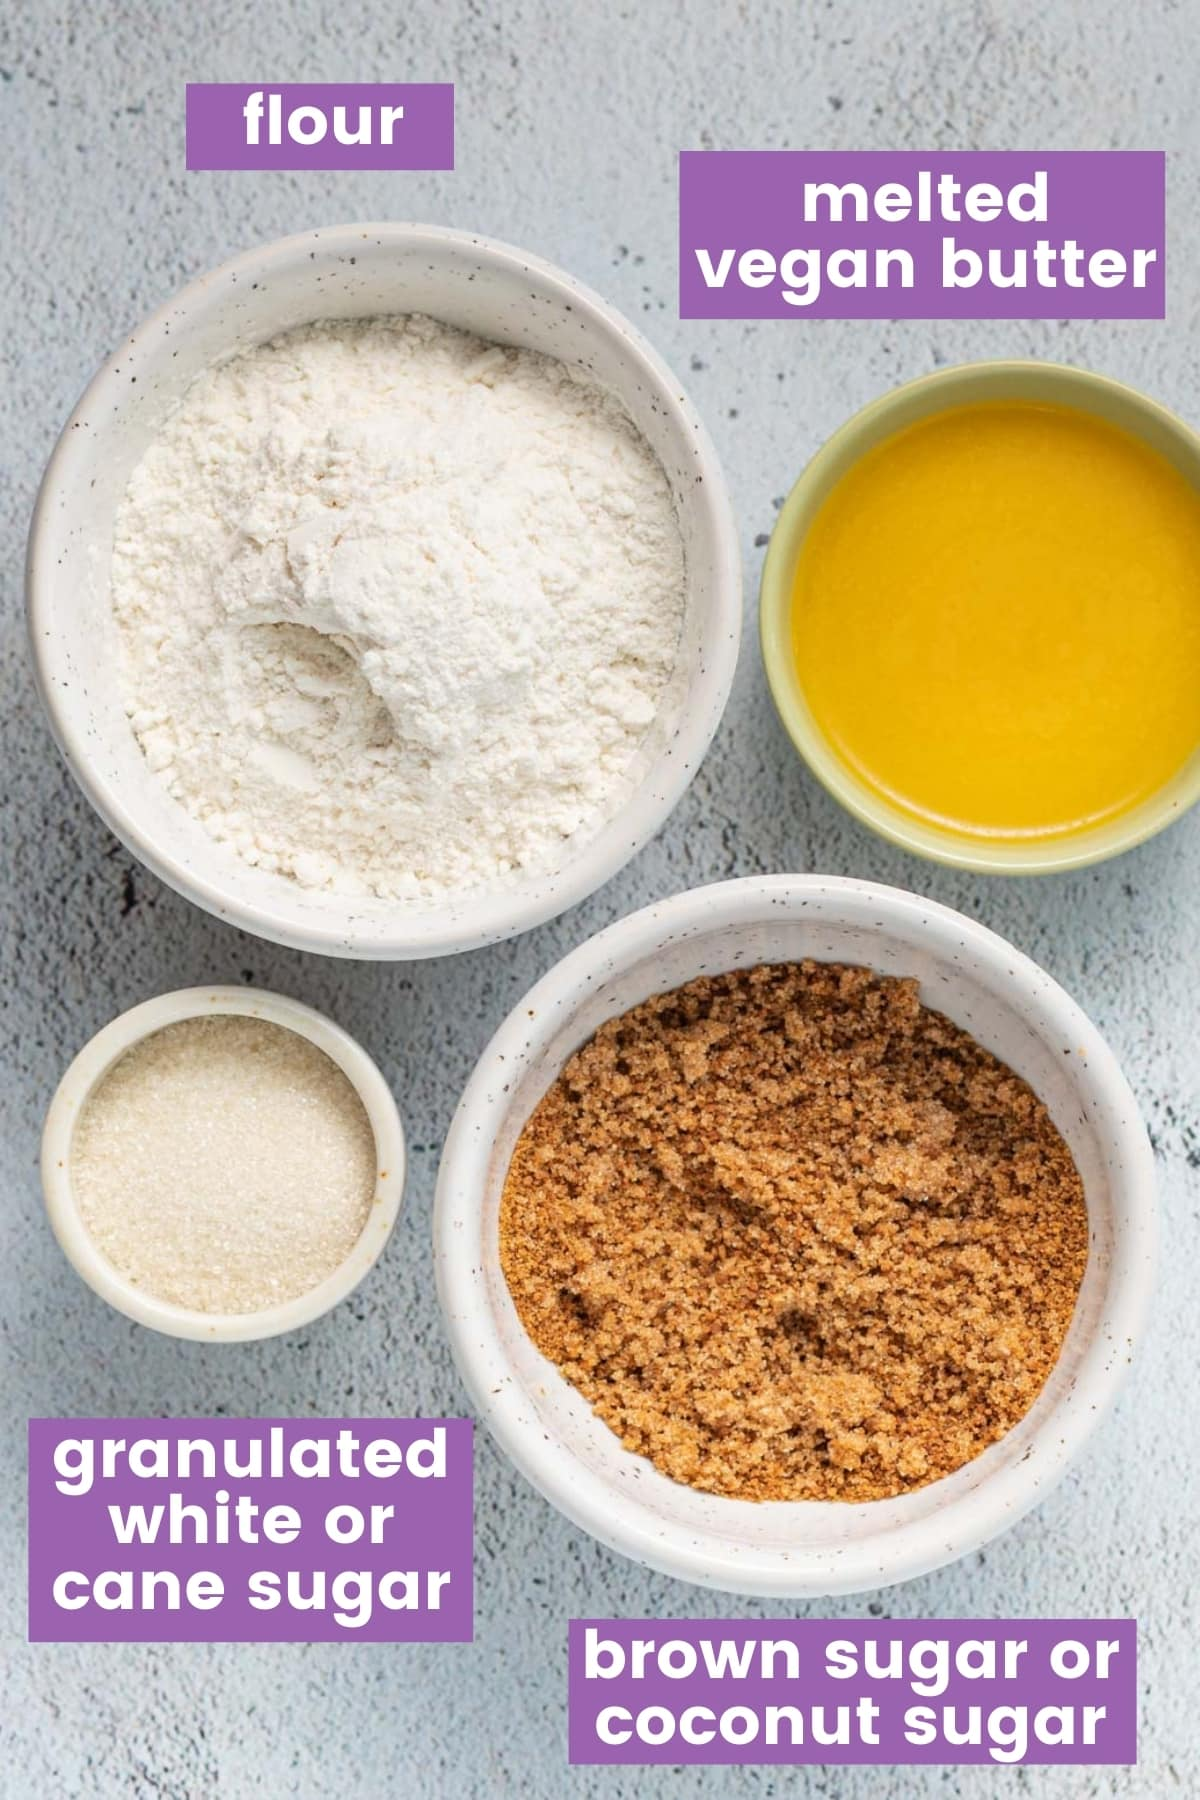 ingredients for streusel topping as per written list